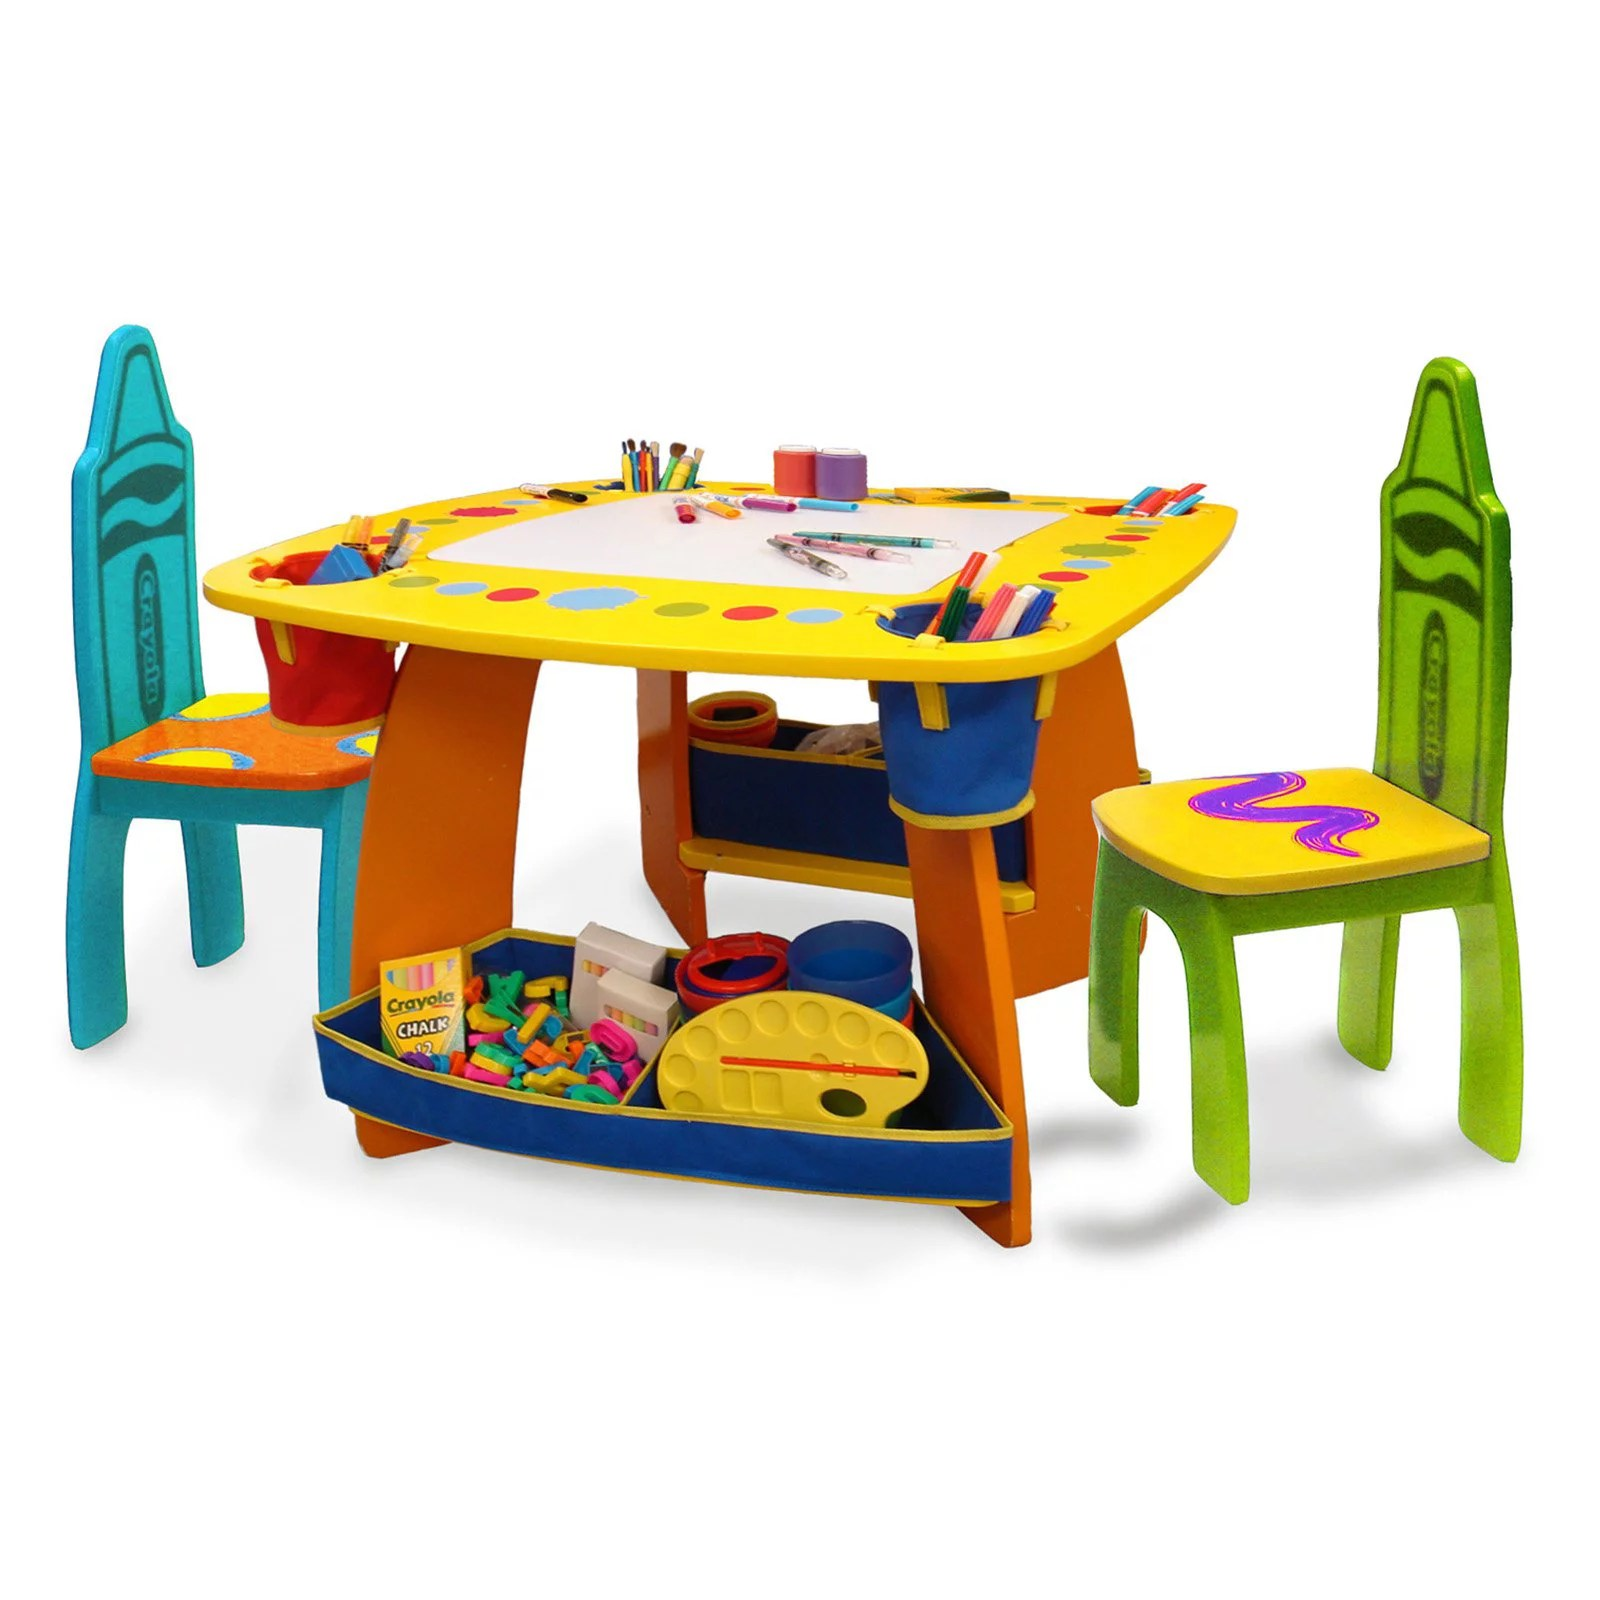 Kids Wood Table And Chairs Grow N Up Crayola Kids Wooden Table Chair Set